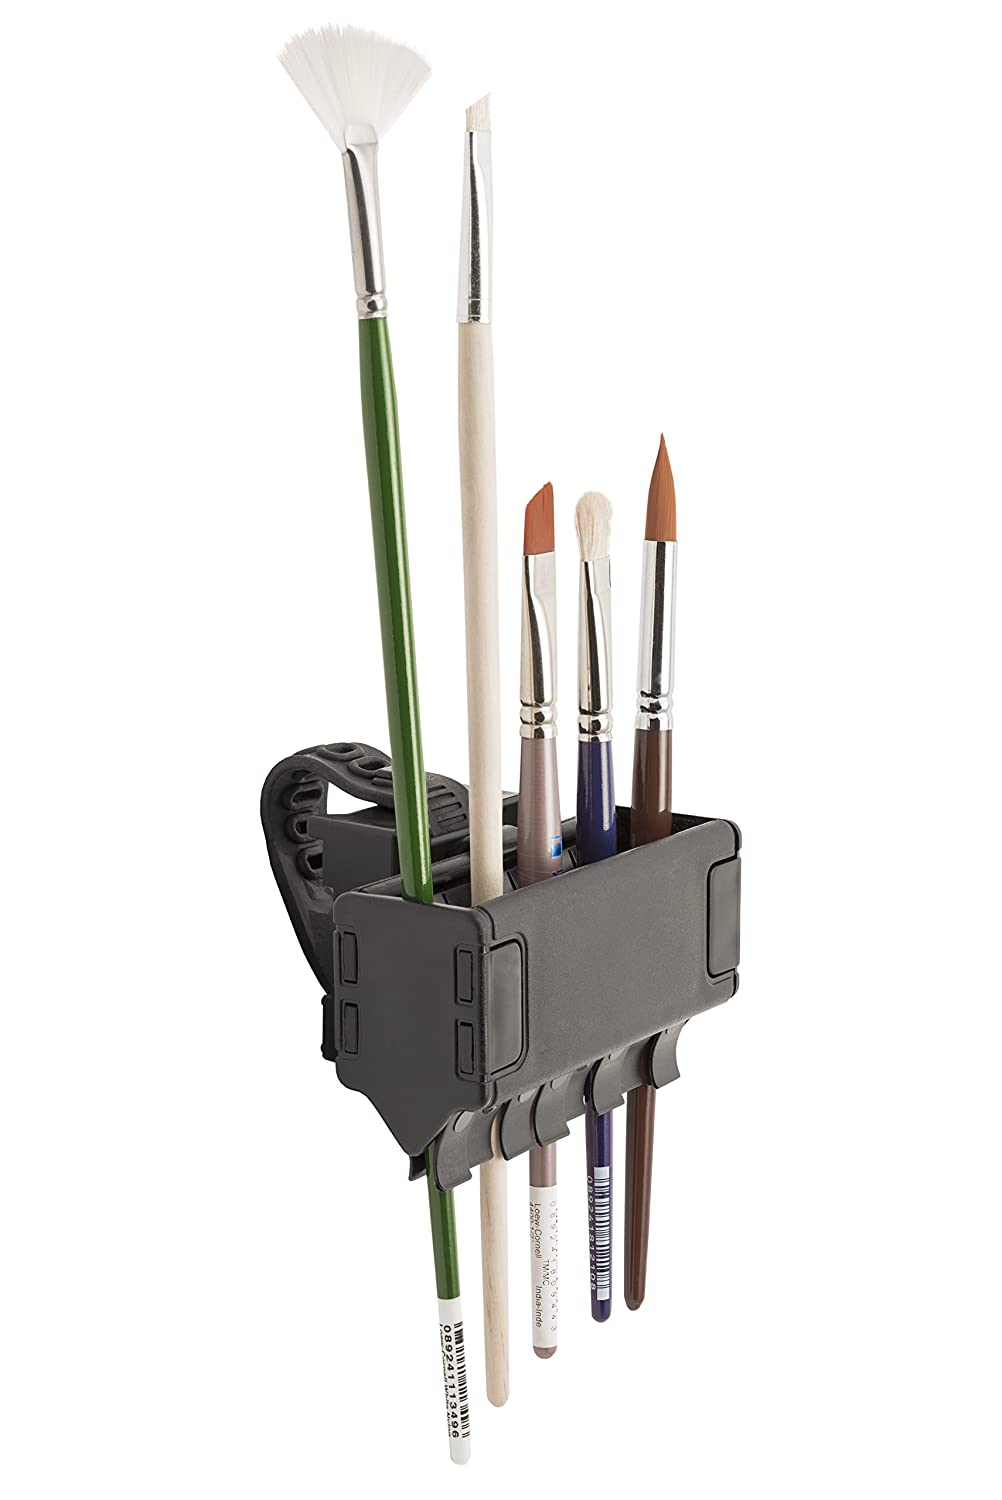 Brush Grip Brush Holder by Easy to Use Products, Holds Up to 8 Brushes (ETU-305),Black C2F